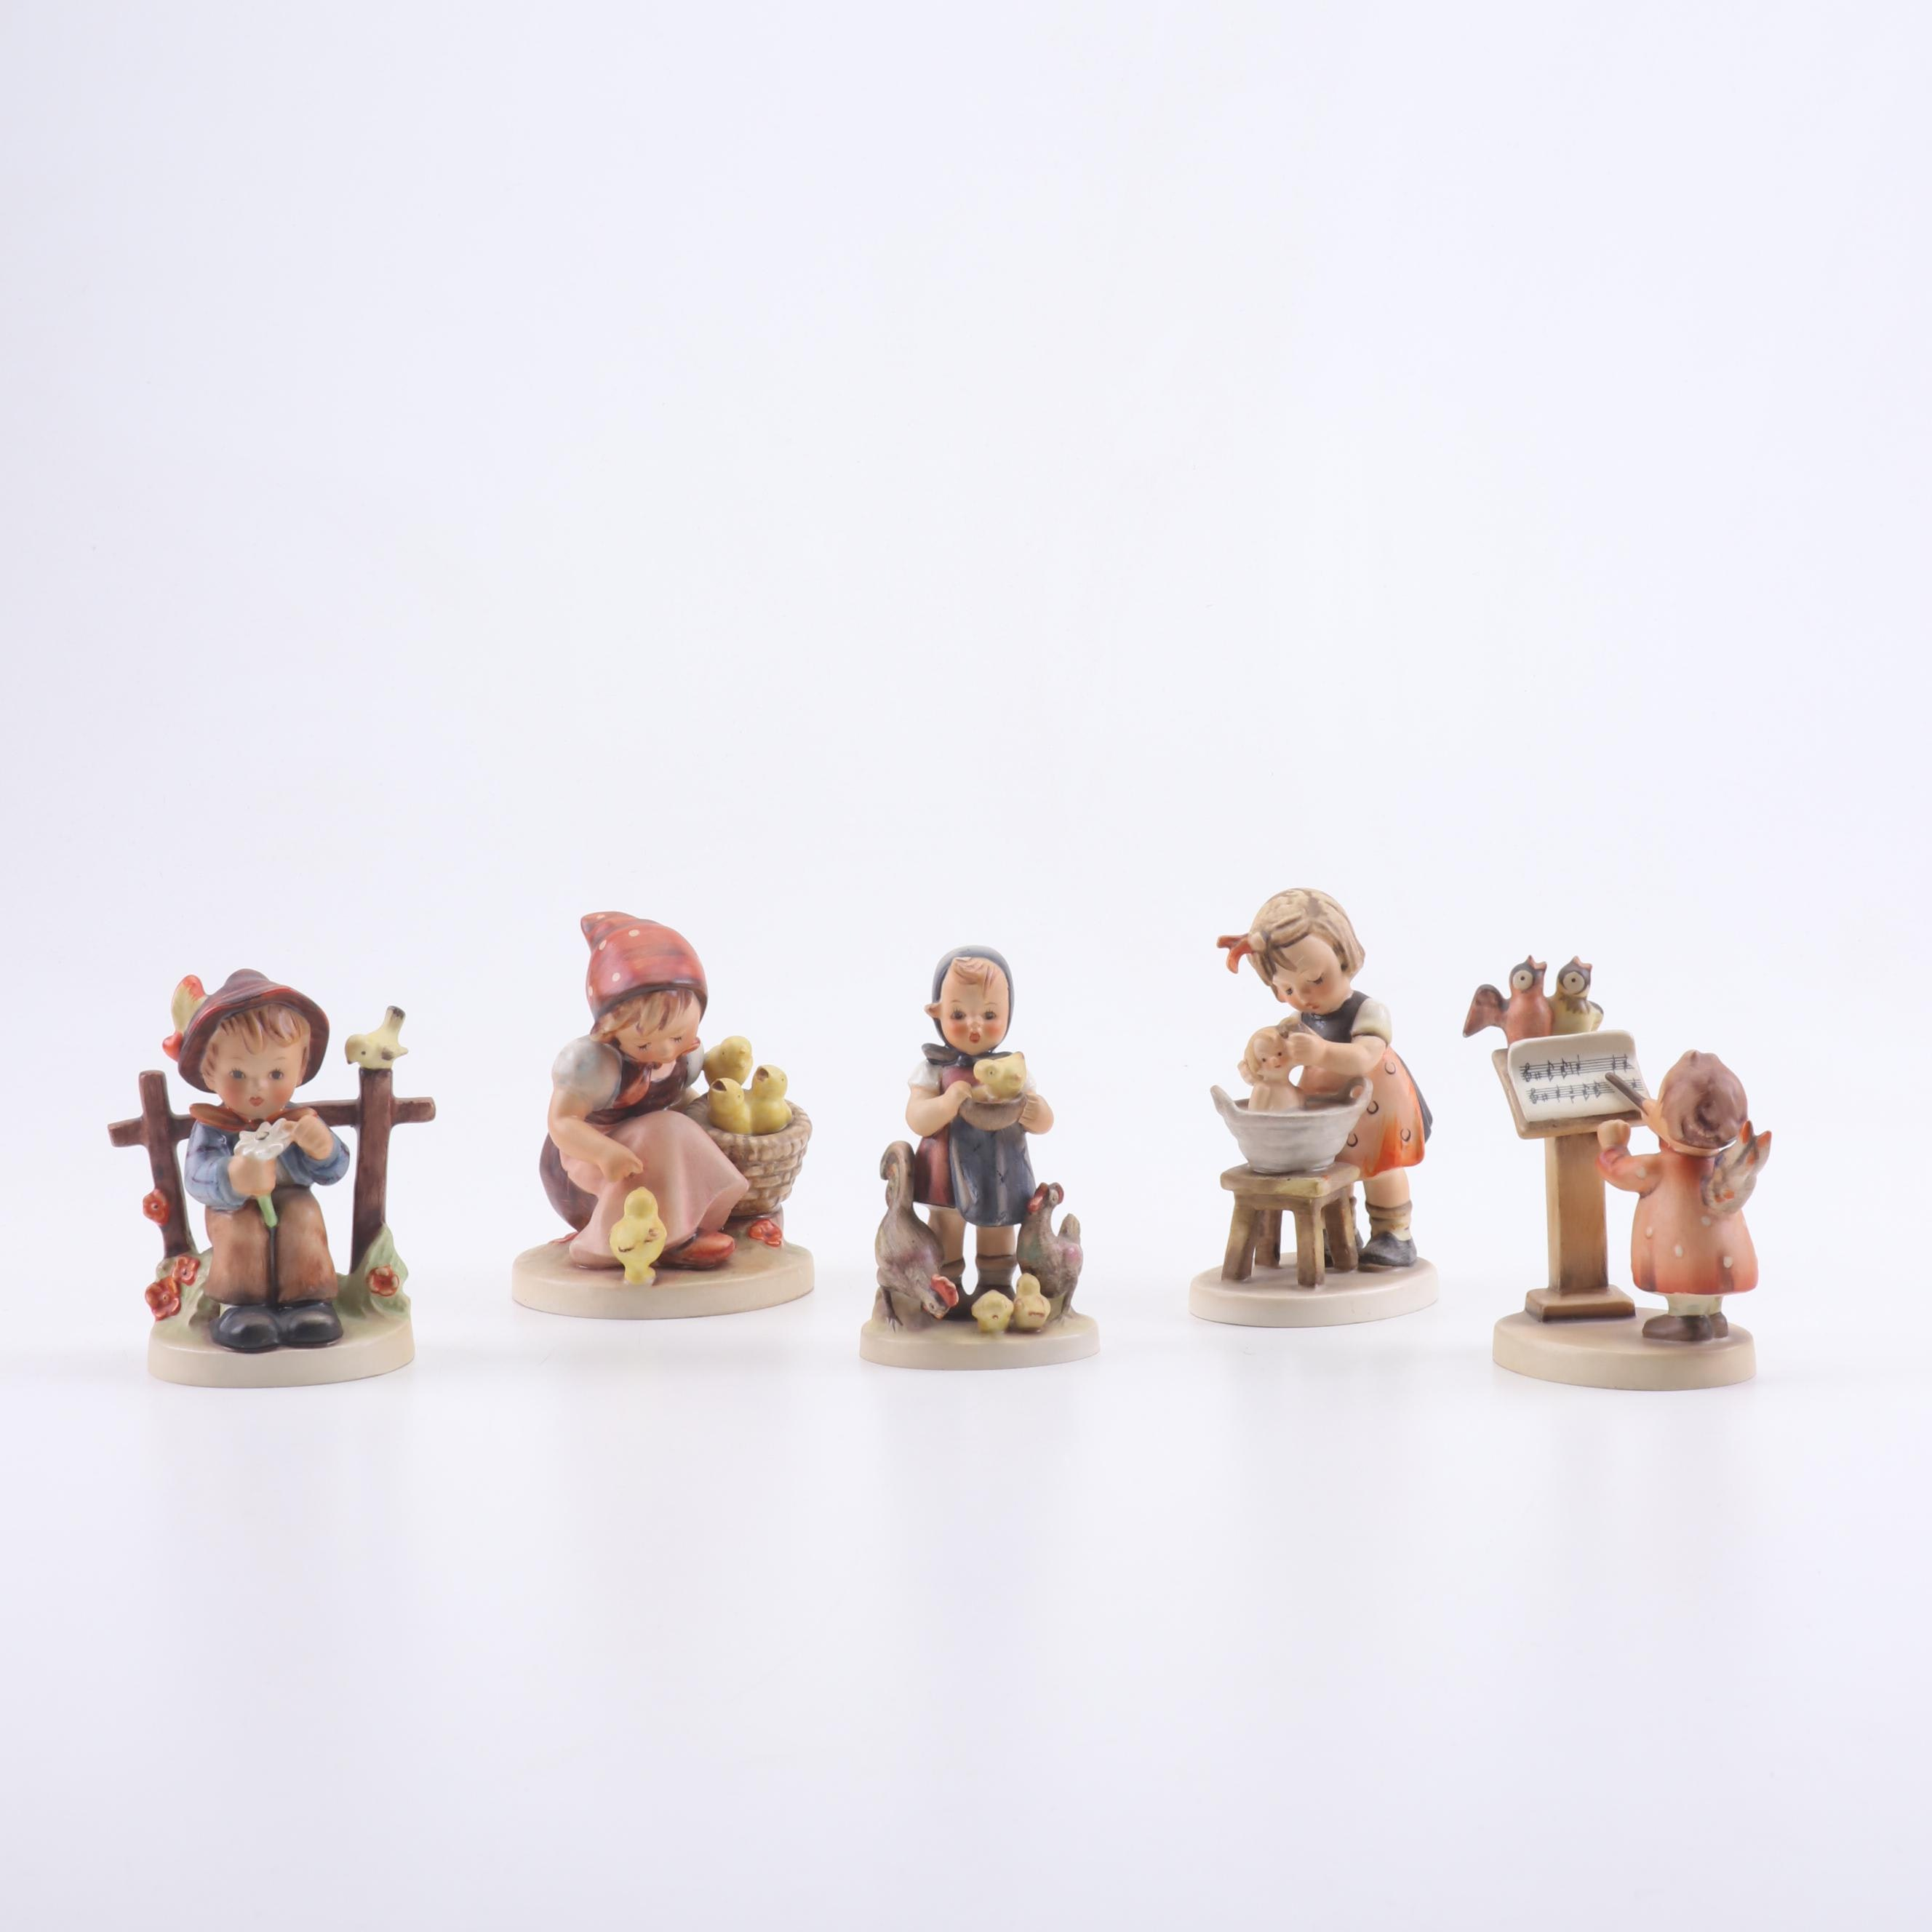 Goebel Hummel Porcelain Figurines with Animals